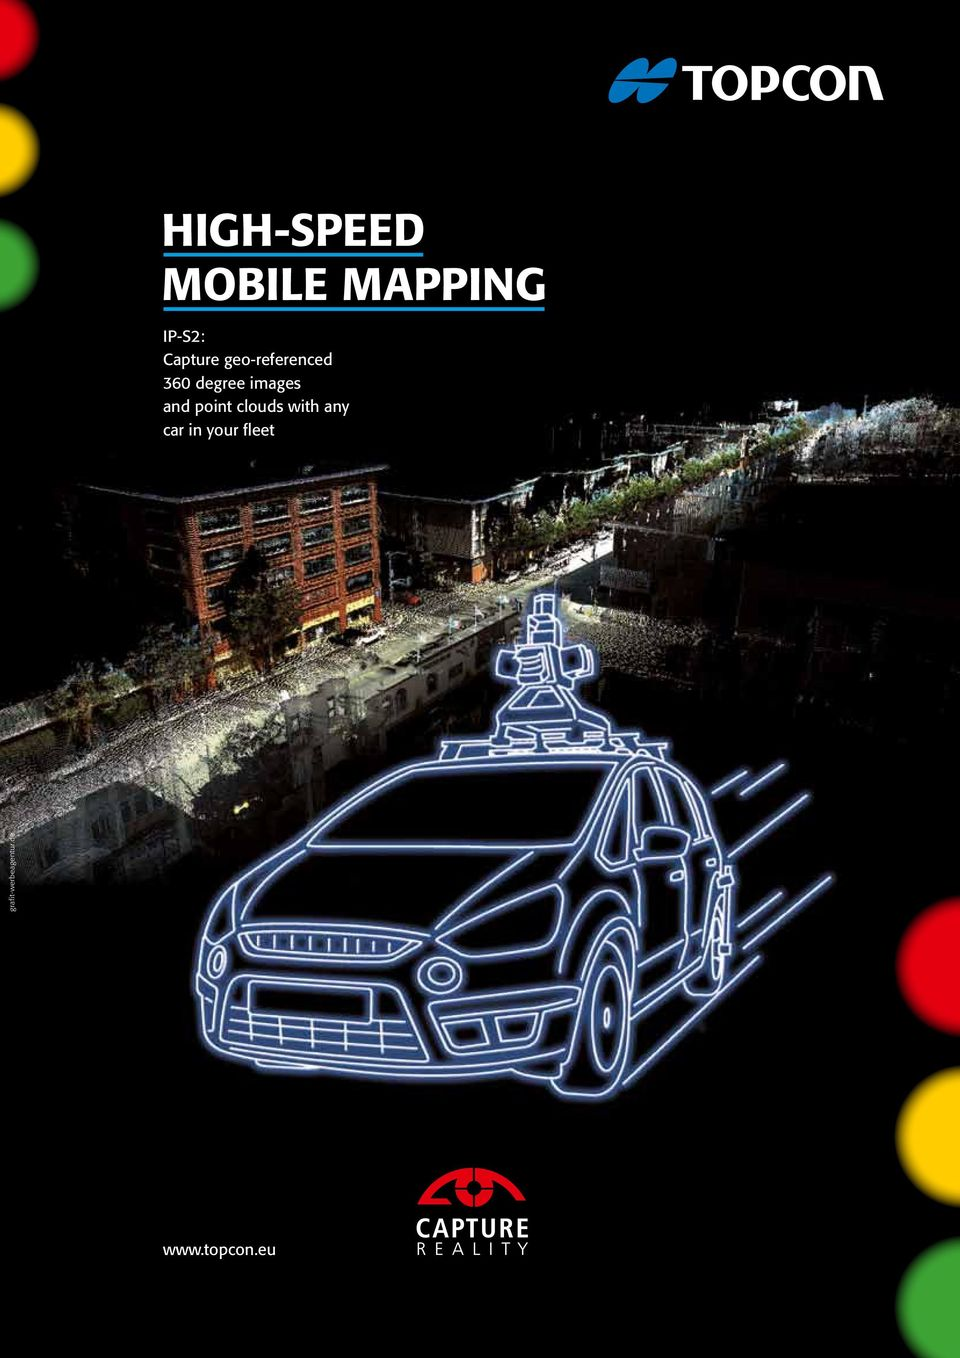 images and point clouds with any car